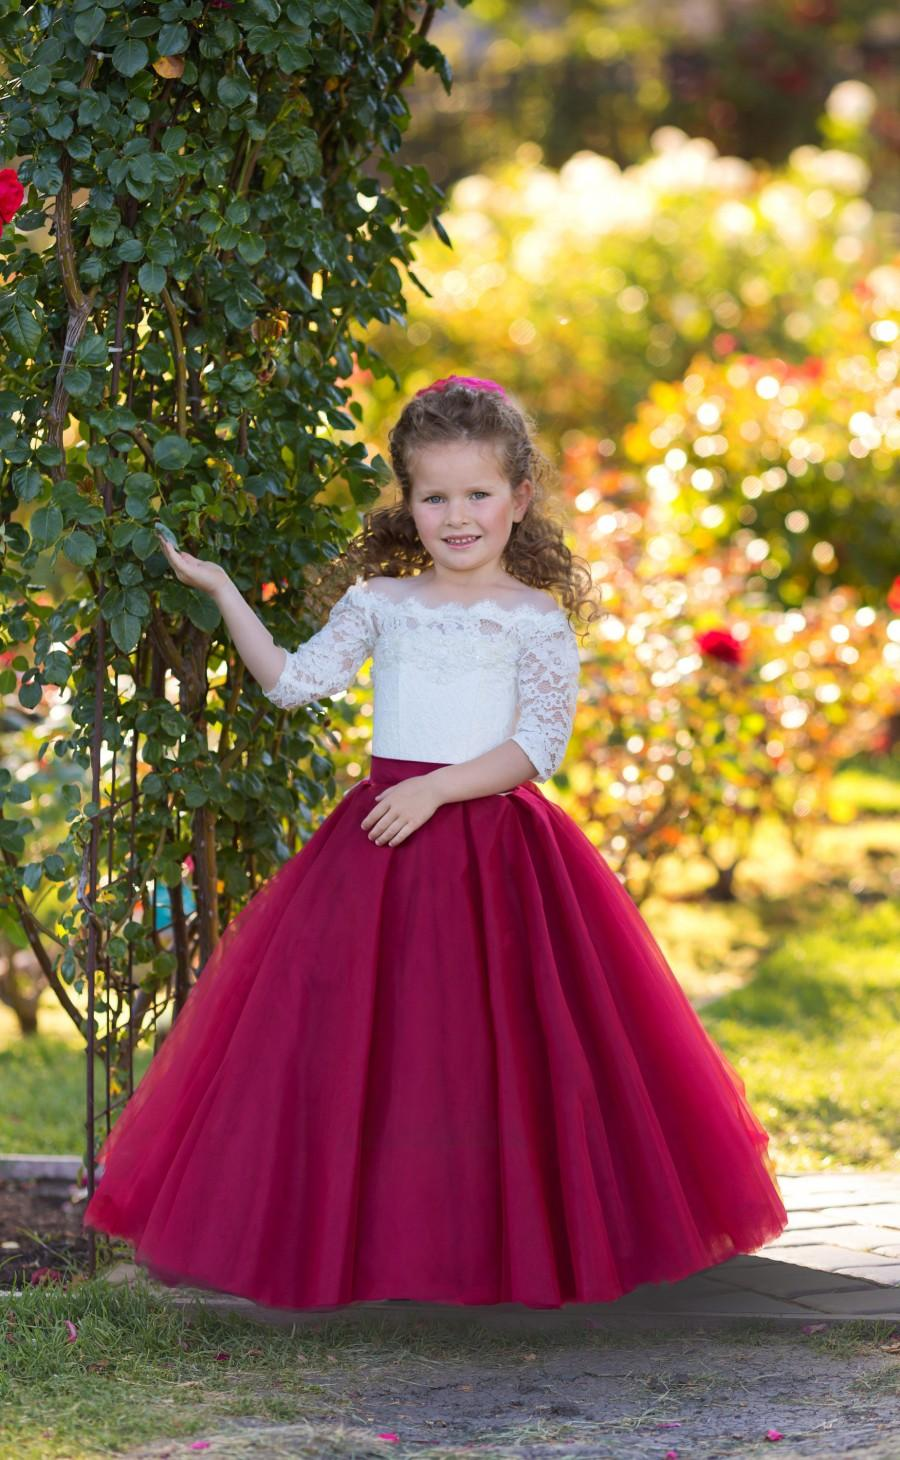 زفاف - Flower Girl Dress Burgundy Wedding A-line Lace Girls Dress Ivory Lace Off Shoulders Tulle Dress Fancy Dress Girls Party Dress Princess Dress